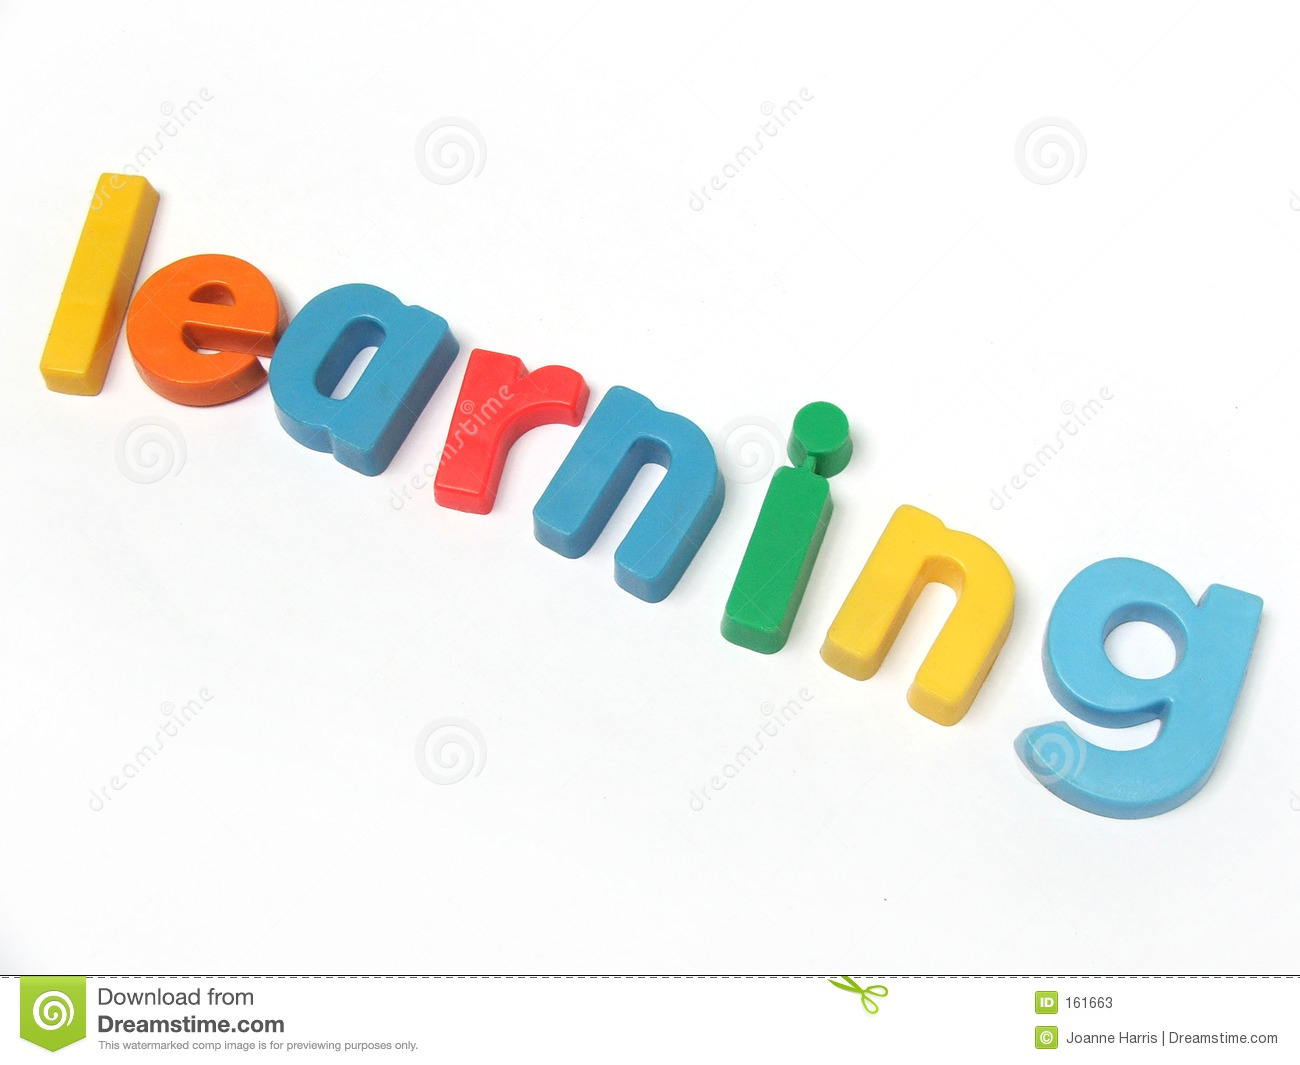 ABC fridge magnet letters spell out the word learning.